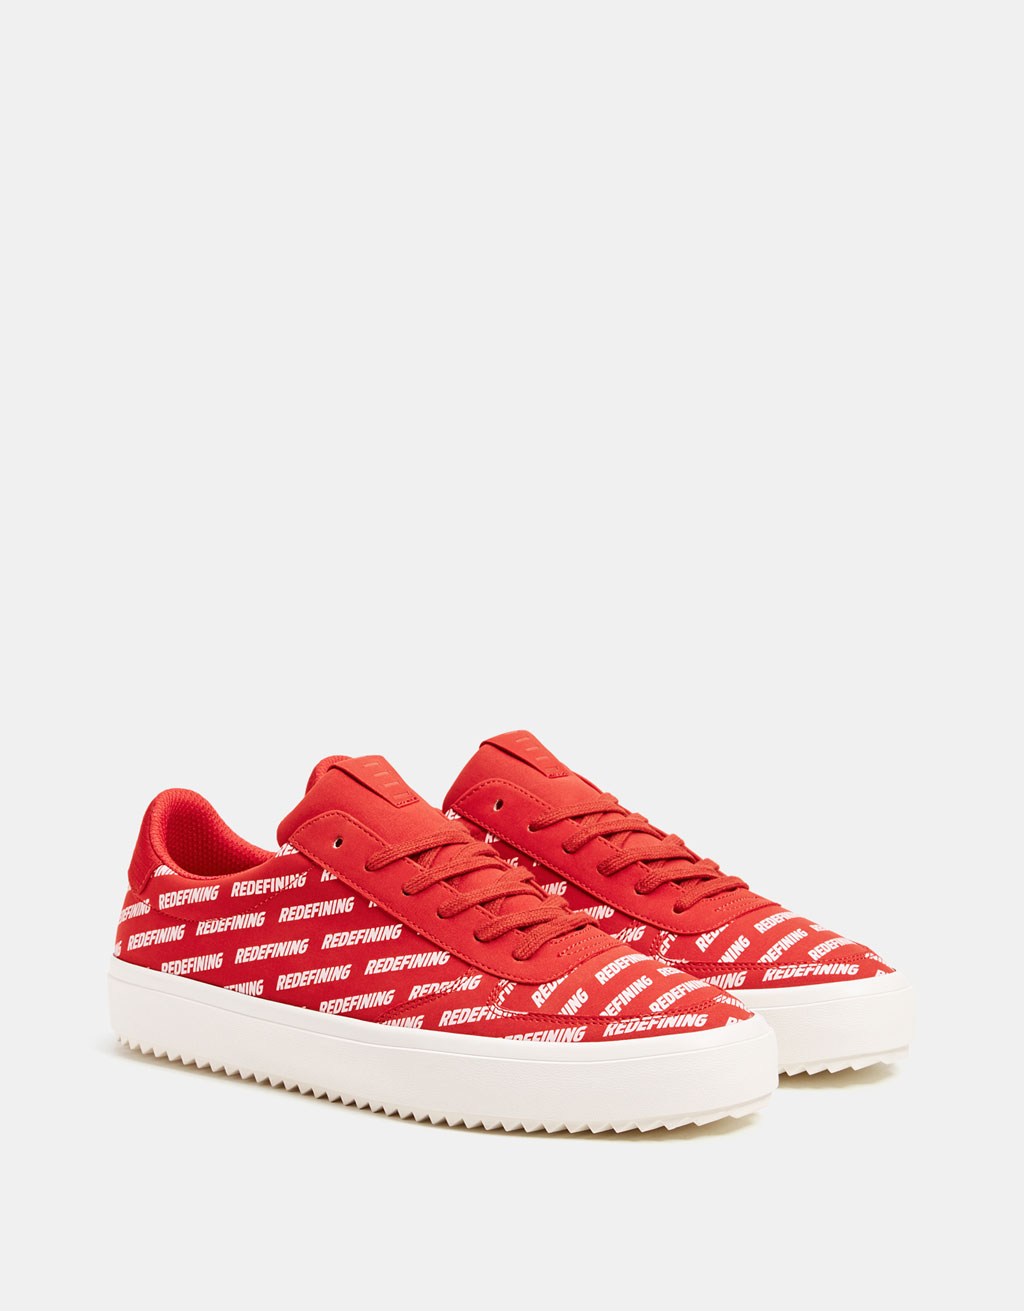 Men's red slogan sneakers